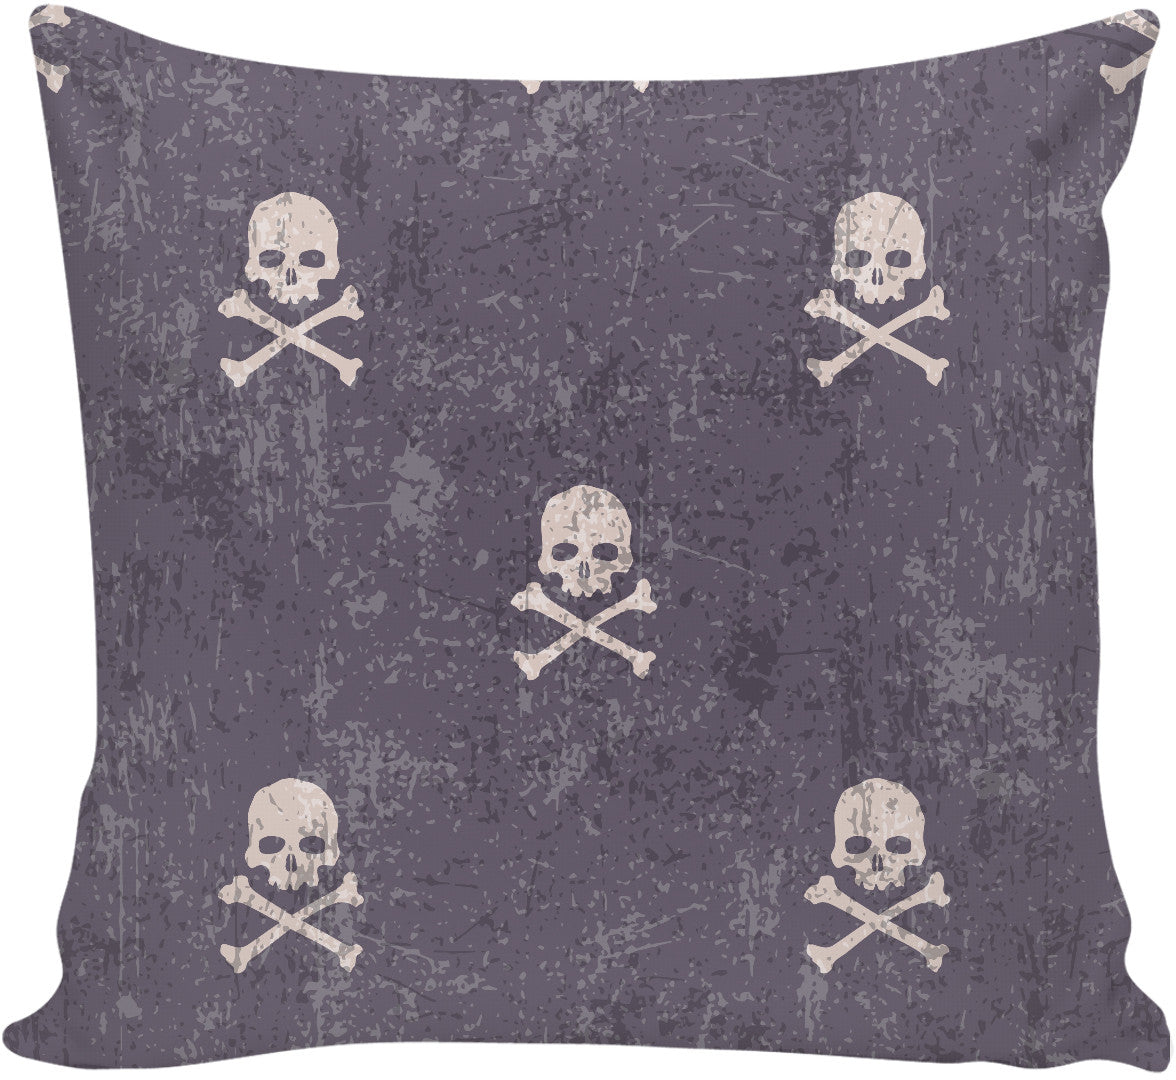 I'm Distressed Skull and Cross Bones Pillow